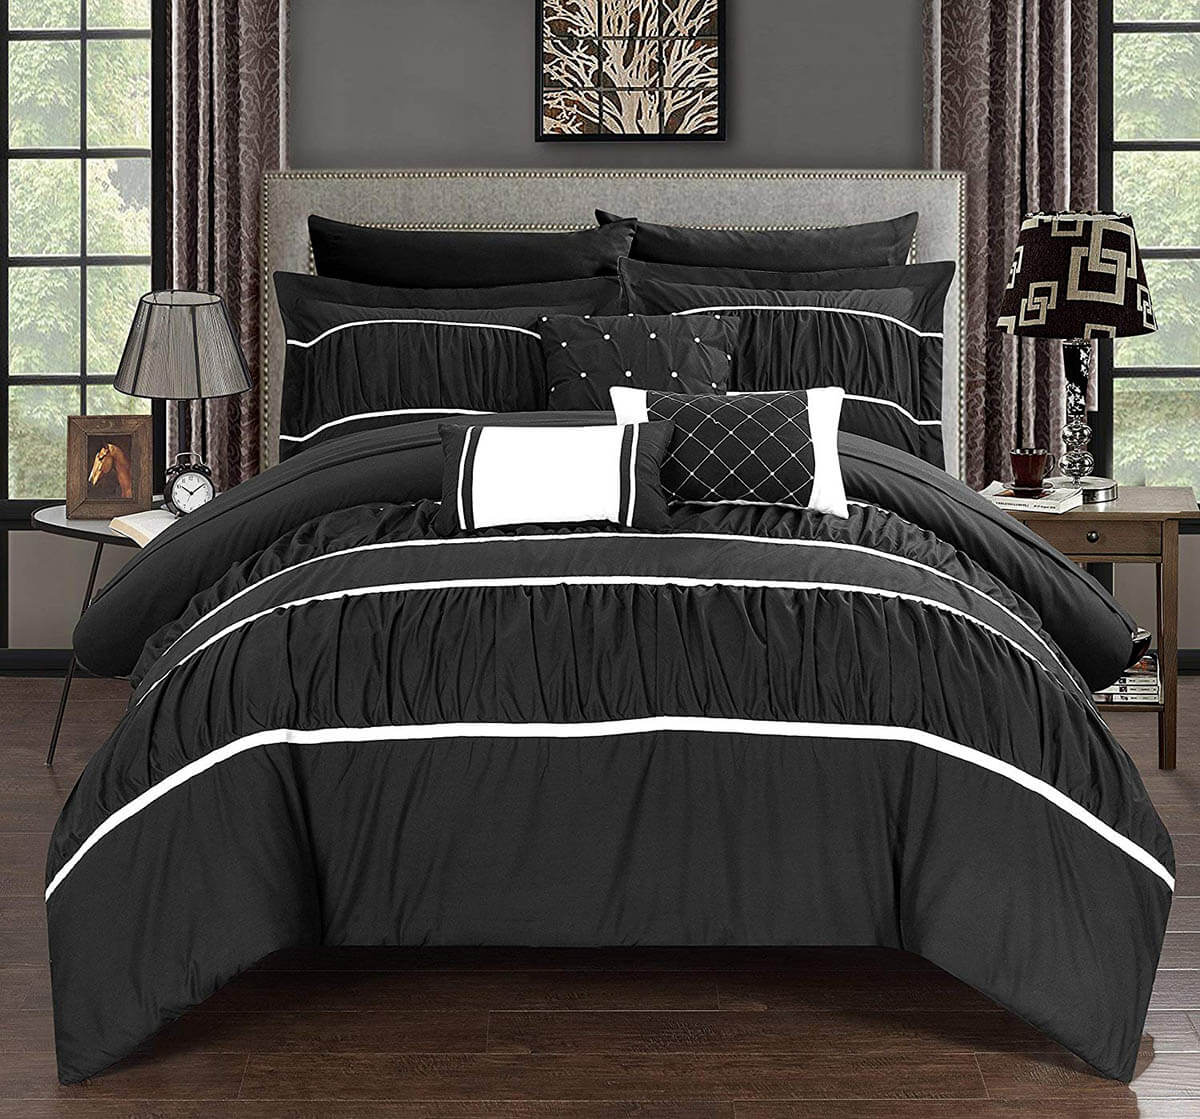 Grey and Black Bedroom Decor Ideas